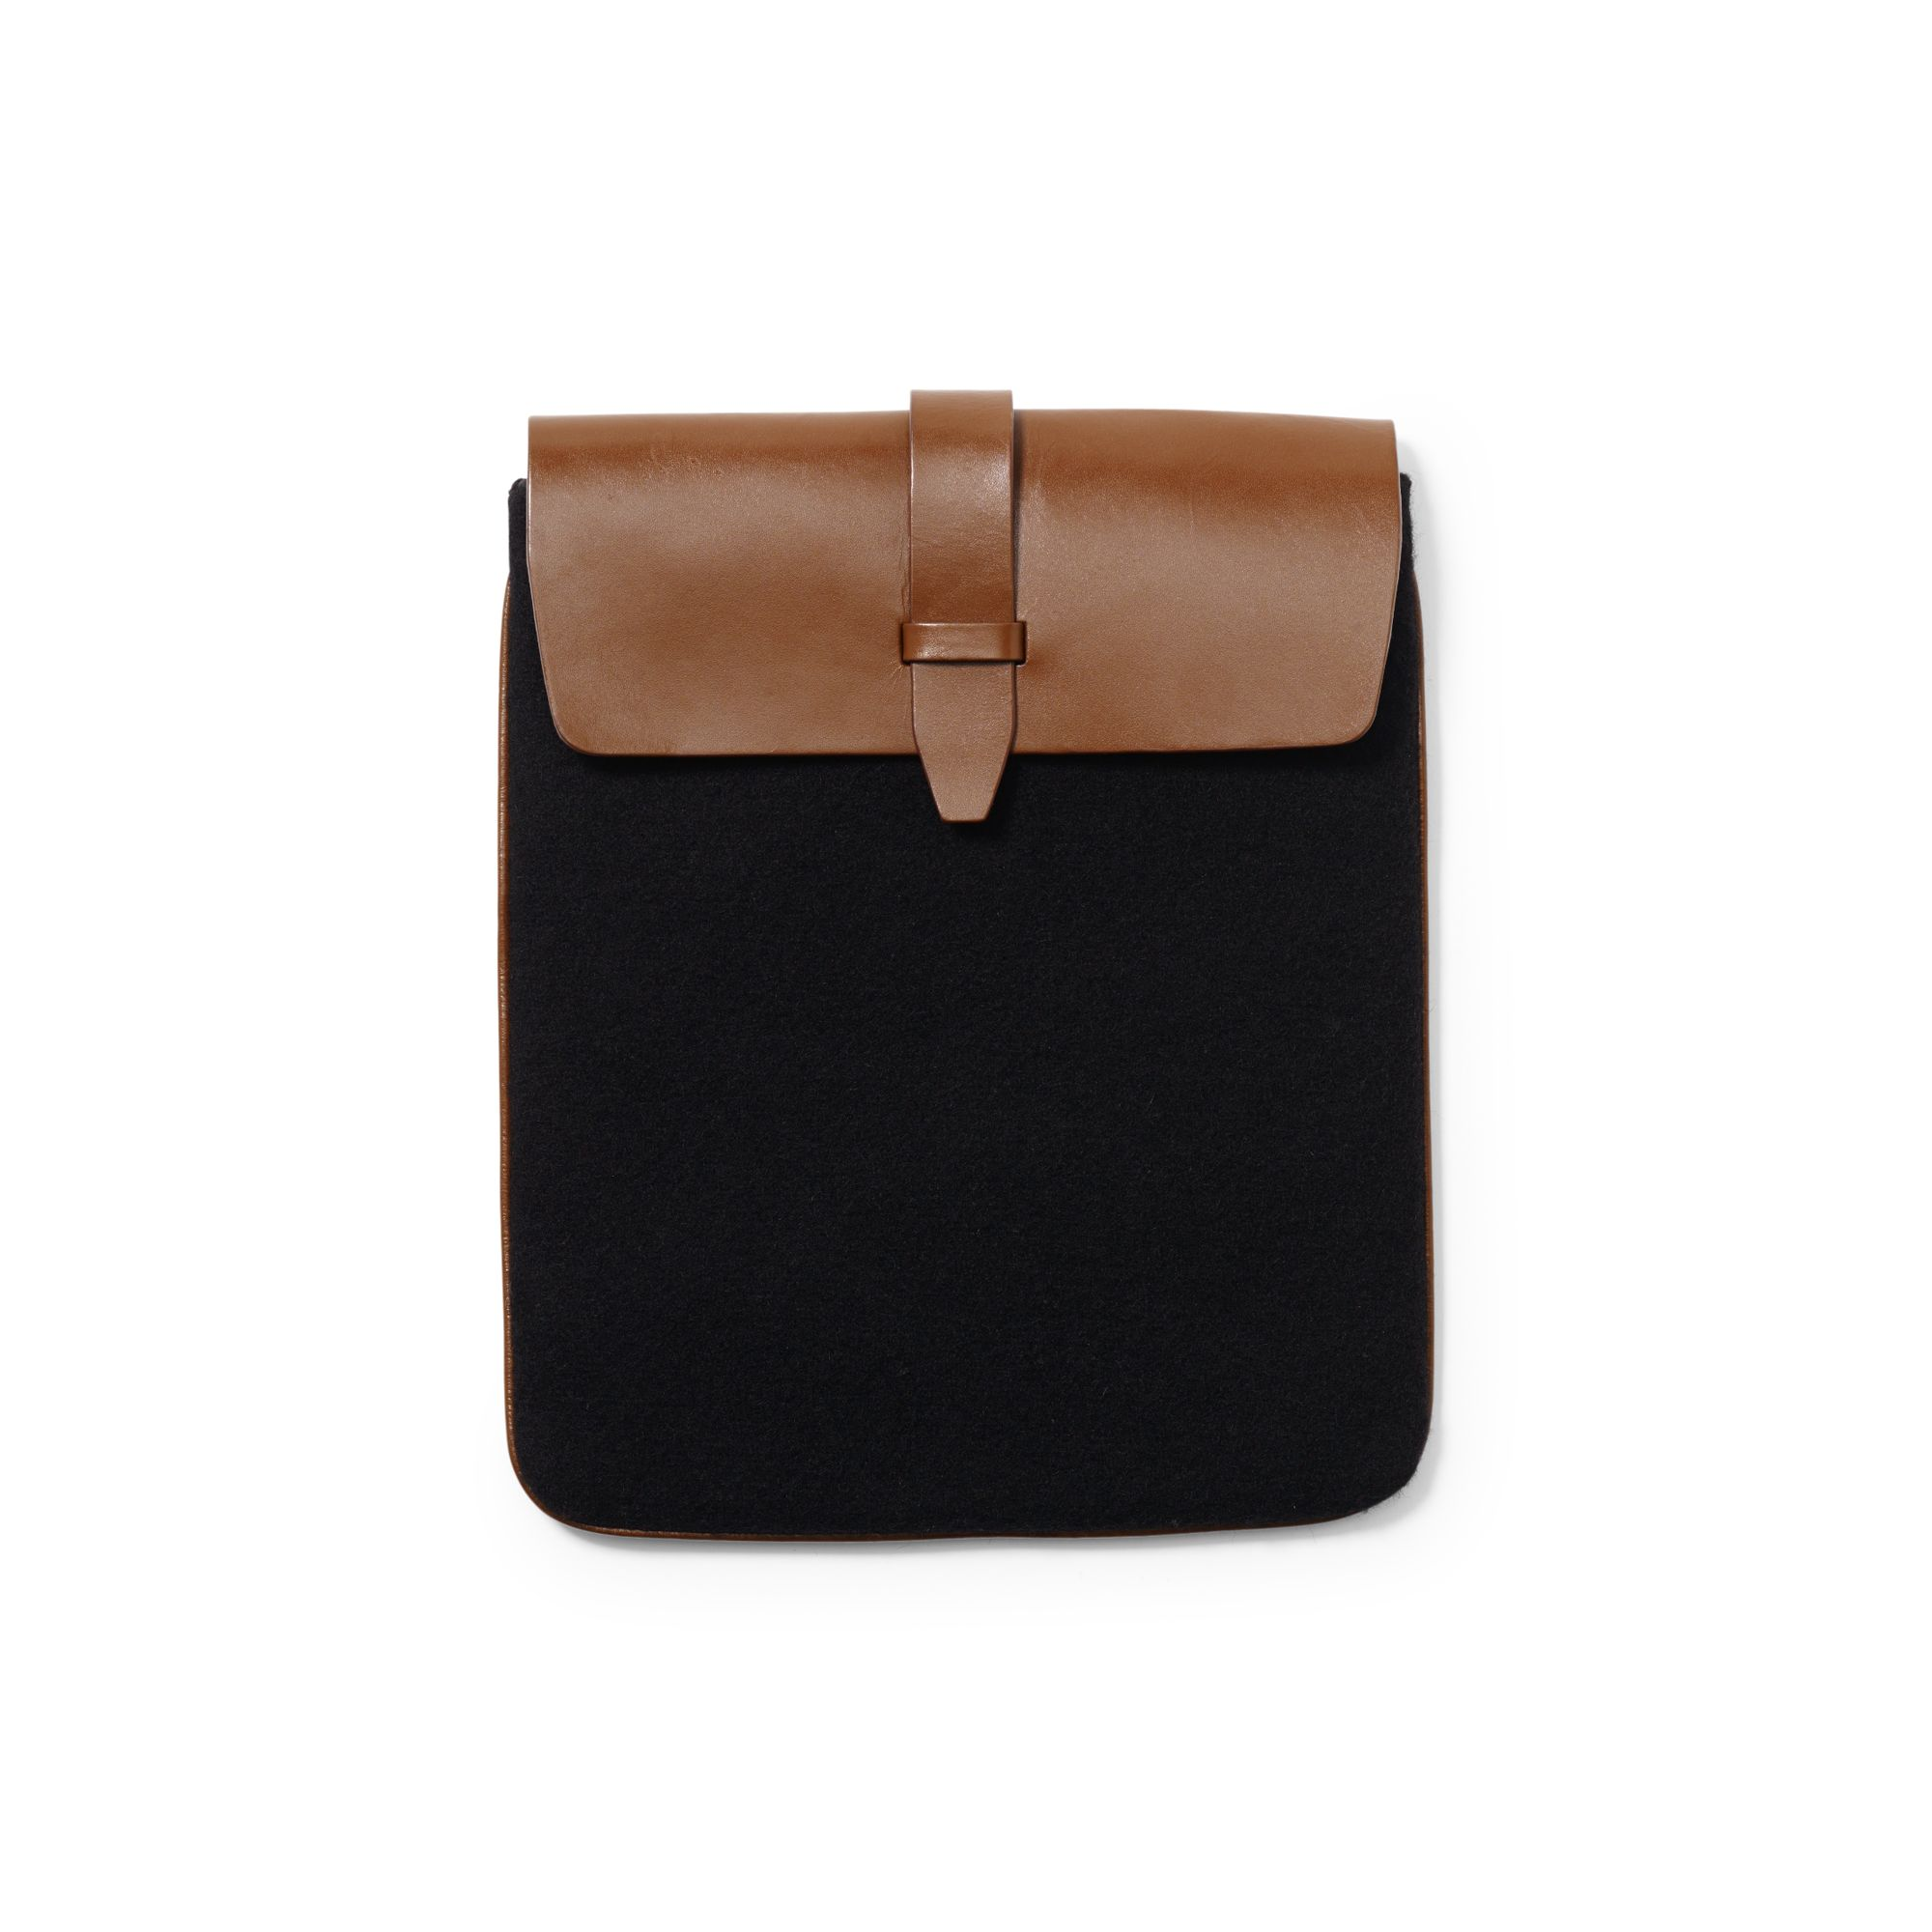 iPads aren't going anywhere any time soon, so more and more brands are coming out with stylish carrying cases. I love this Wool iPad Case ($60) from Club Monaco because it's simple, it's affordable, and it would match just about anything.  — Ryan Roschke, editorial assistant